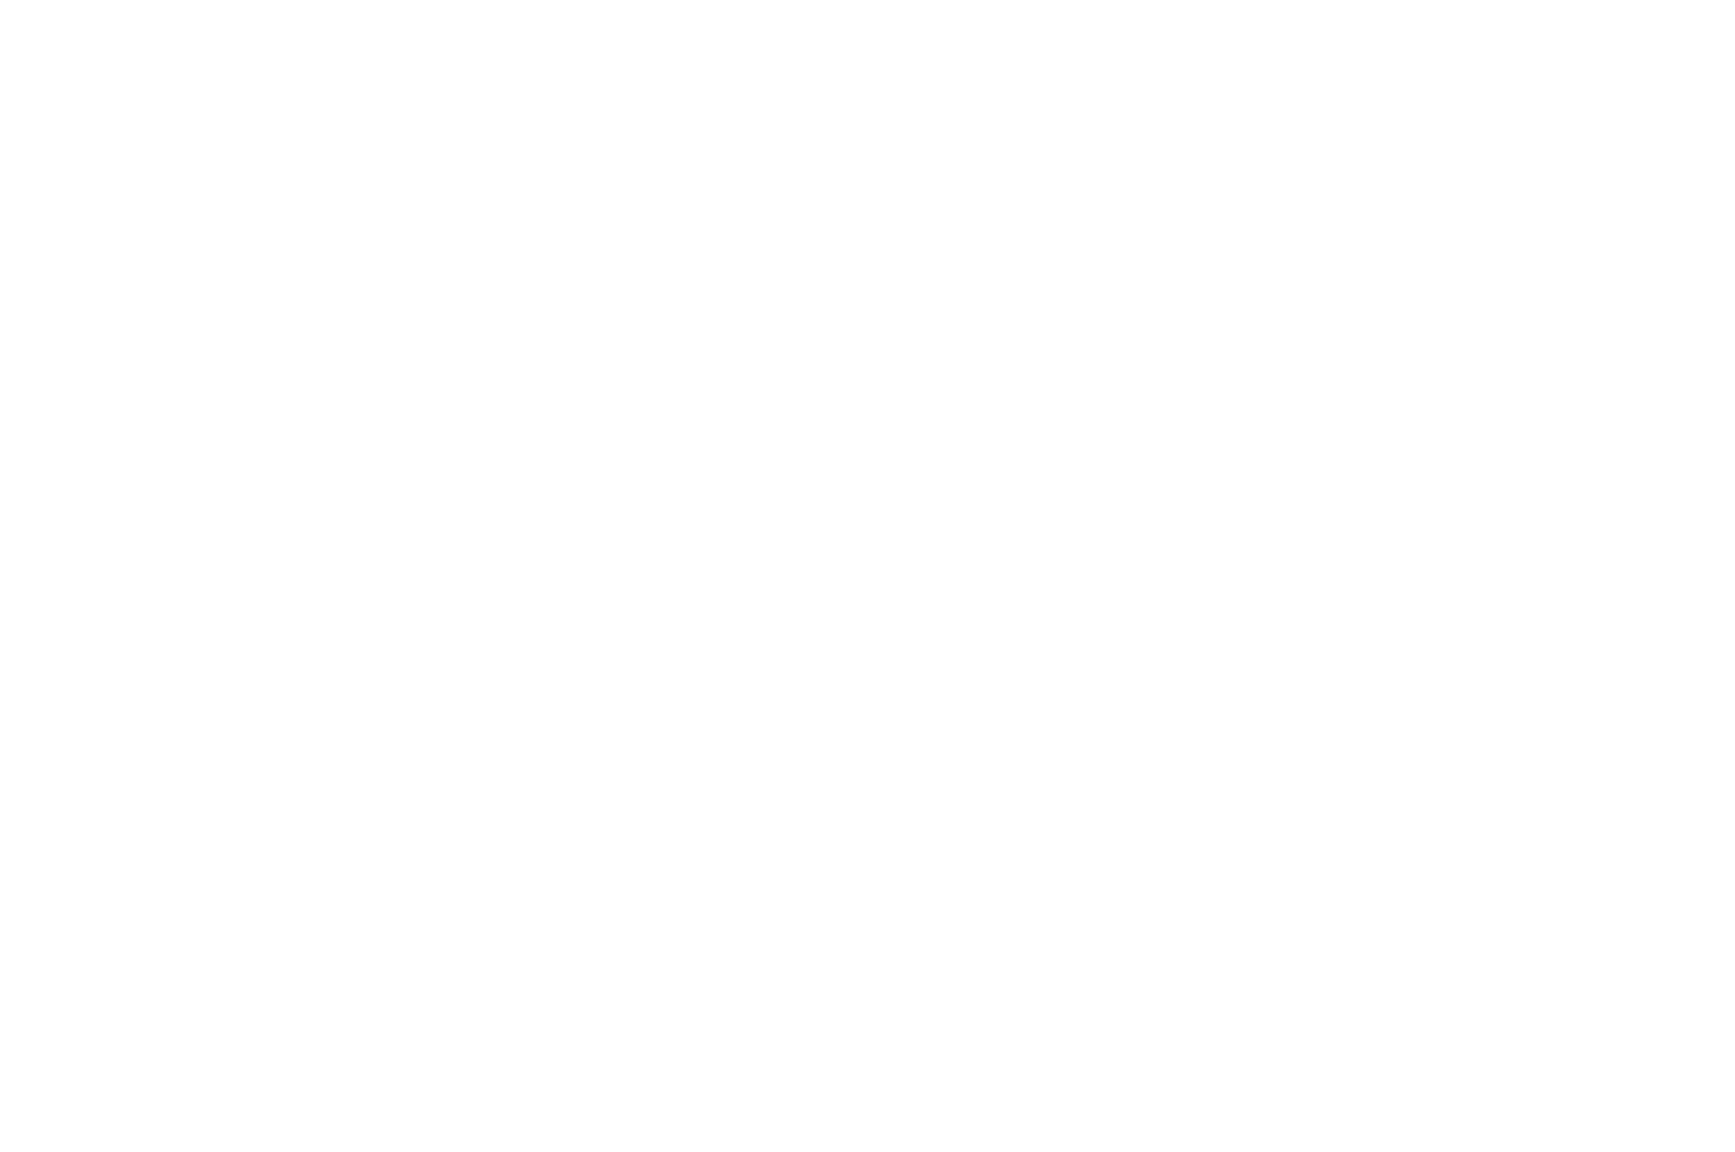 OFFICIAL SELECTION - Prairie State Film Fest - 2019.png